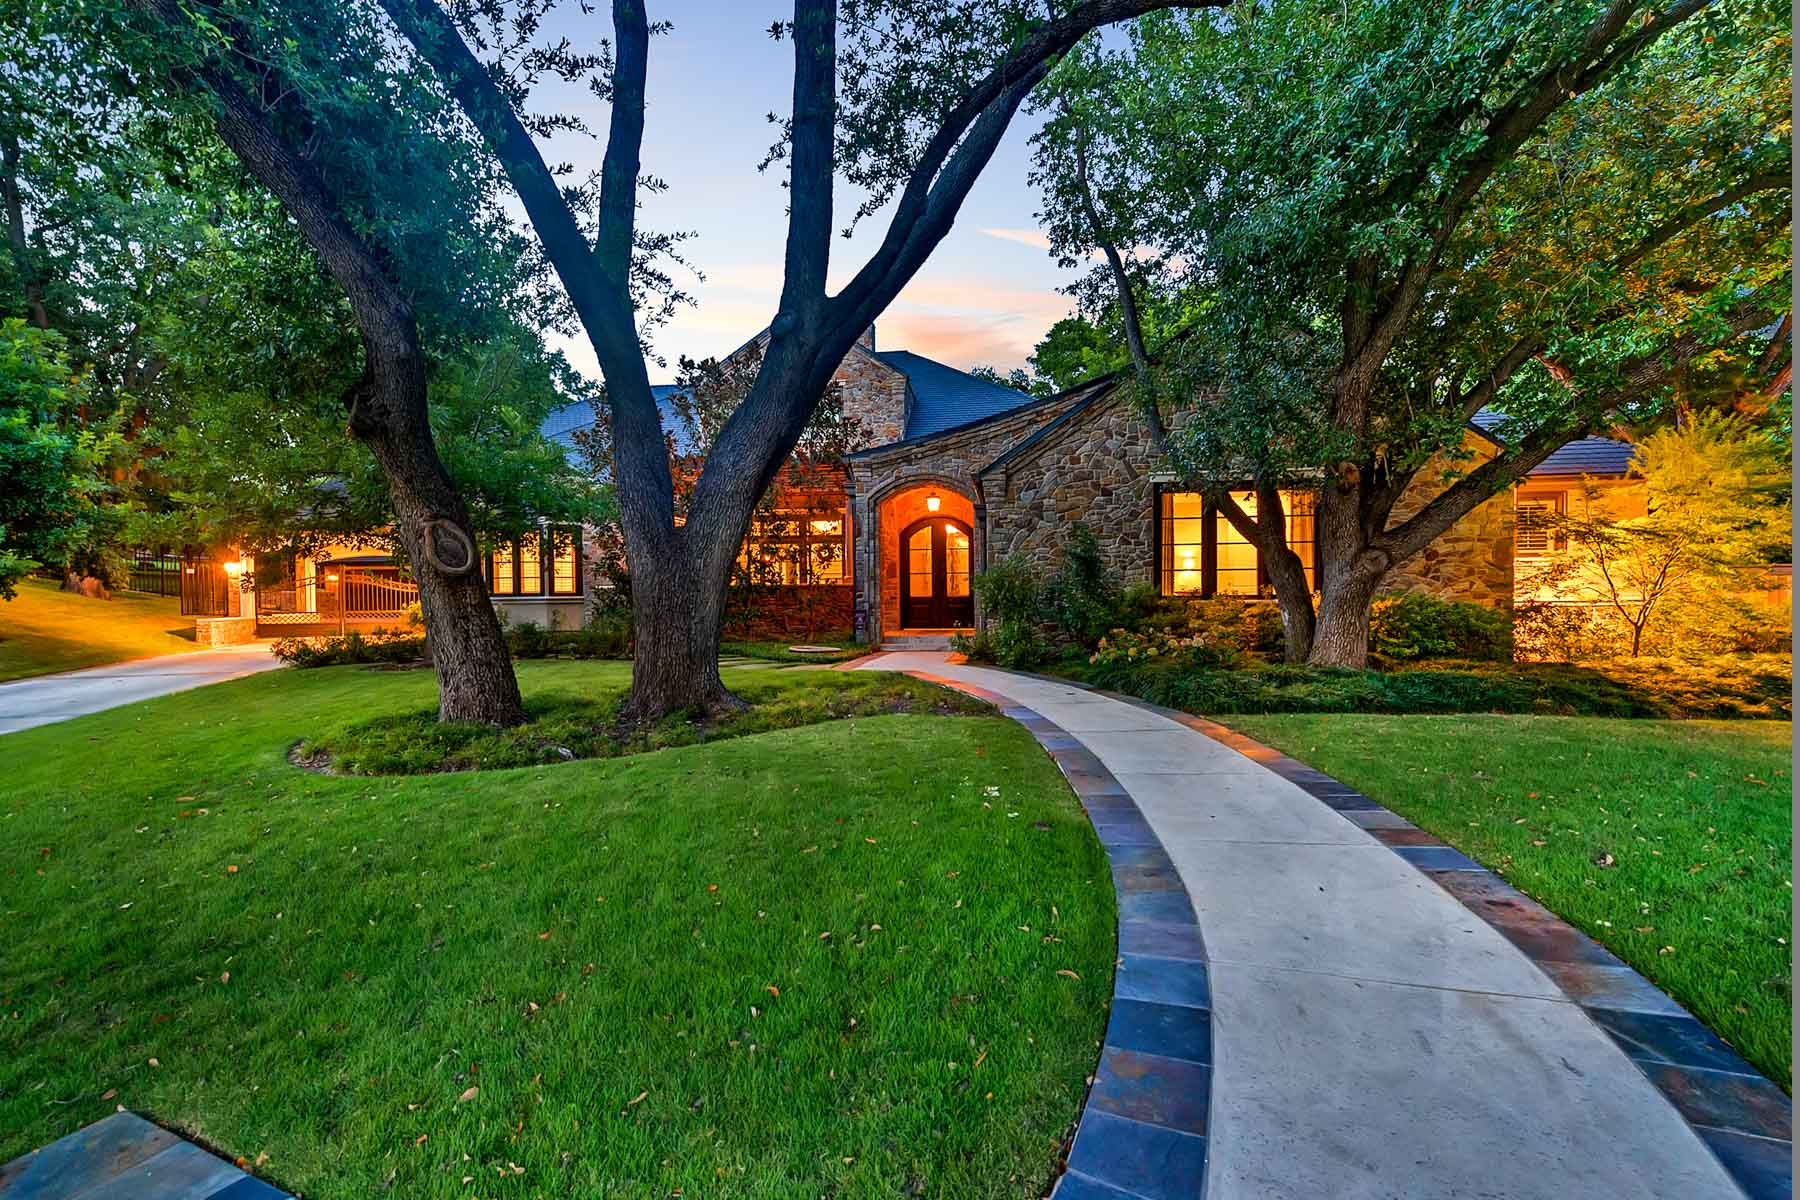 Villa per Vendita alle ore Ridgmar Traditional 1701 Dakar Rd Fort Worth, Texas, 76116 Stati Uniti